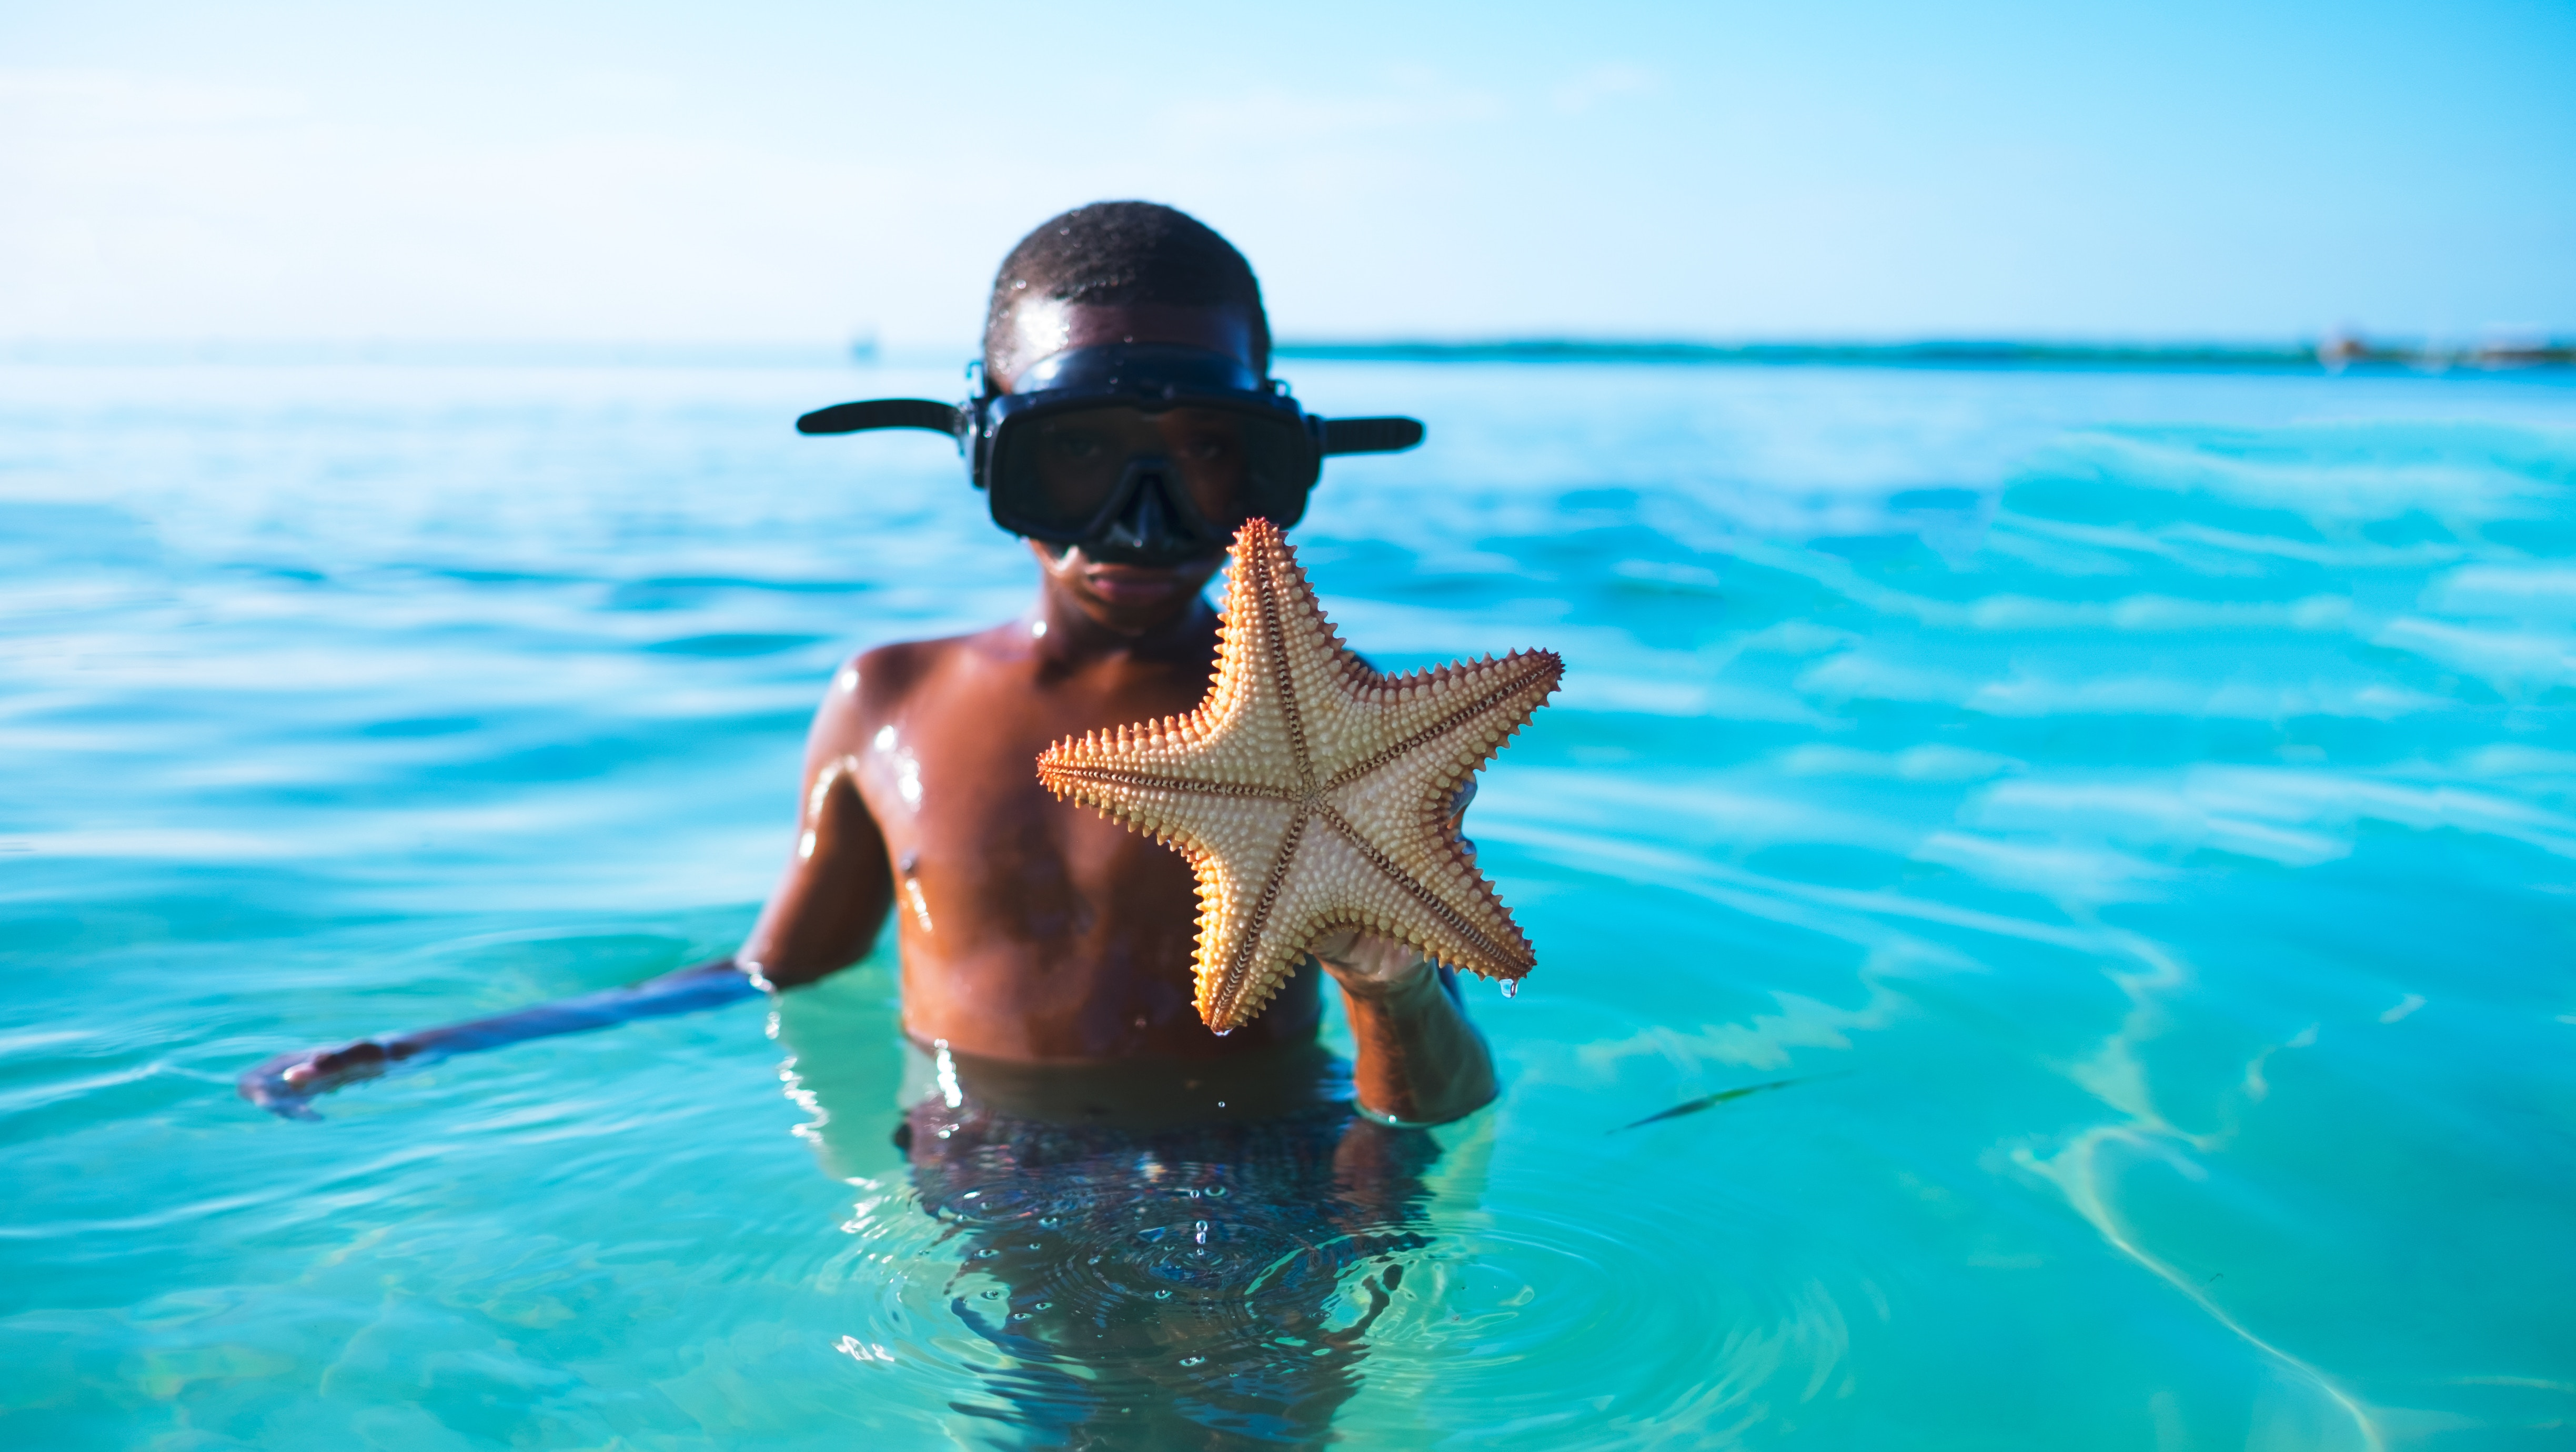 Keeping the Smiles on their Faces: Helping Your Kids Enjoy Their Vacation